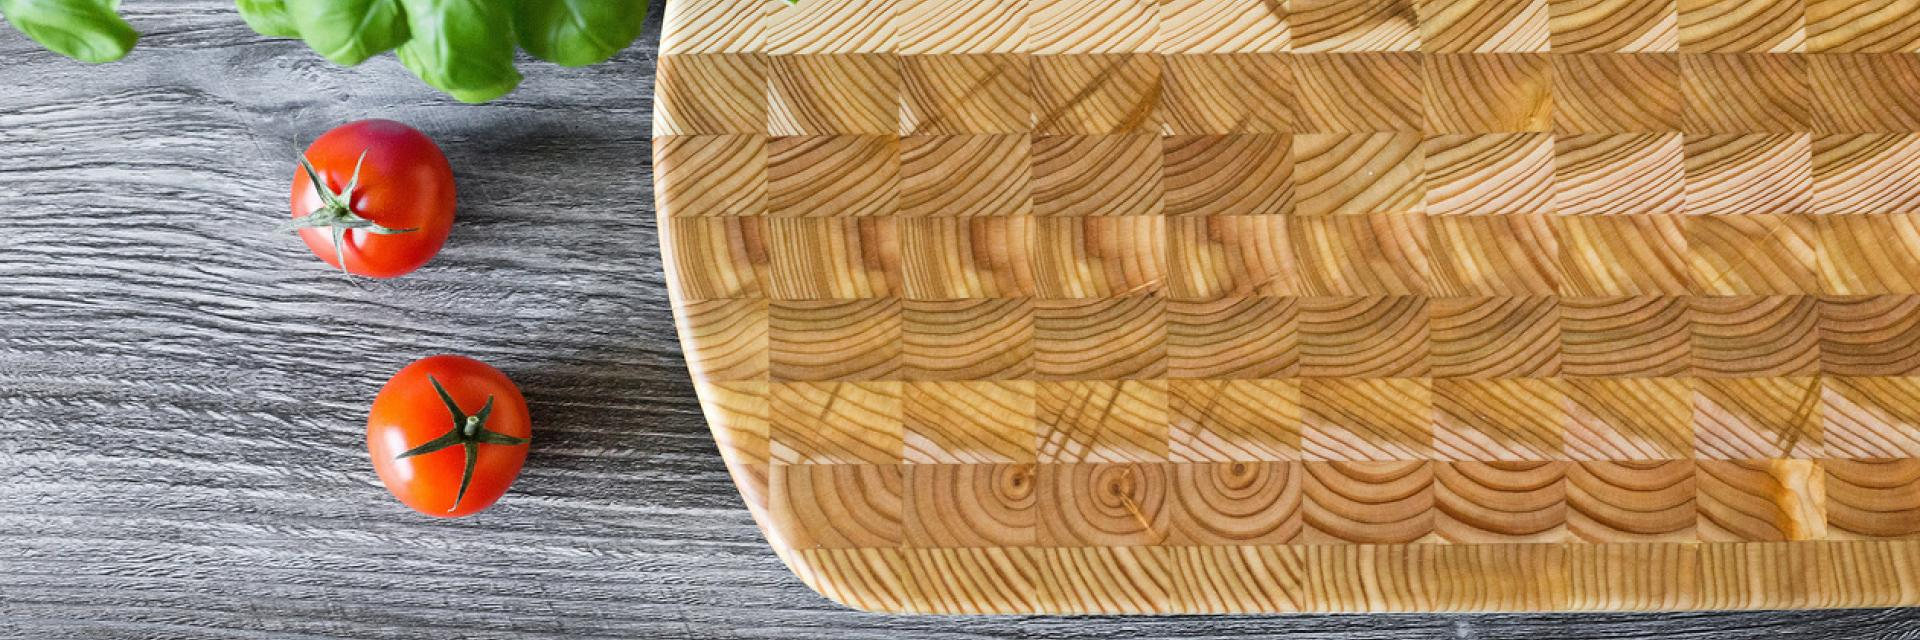 Rounded Larch Wood cutting board